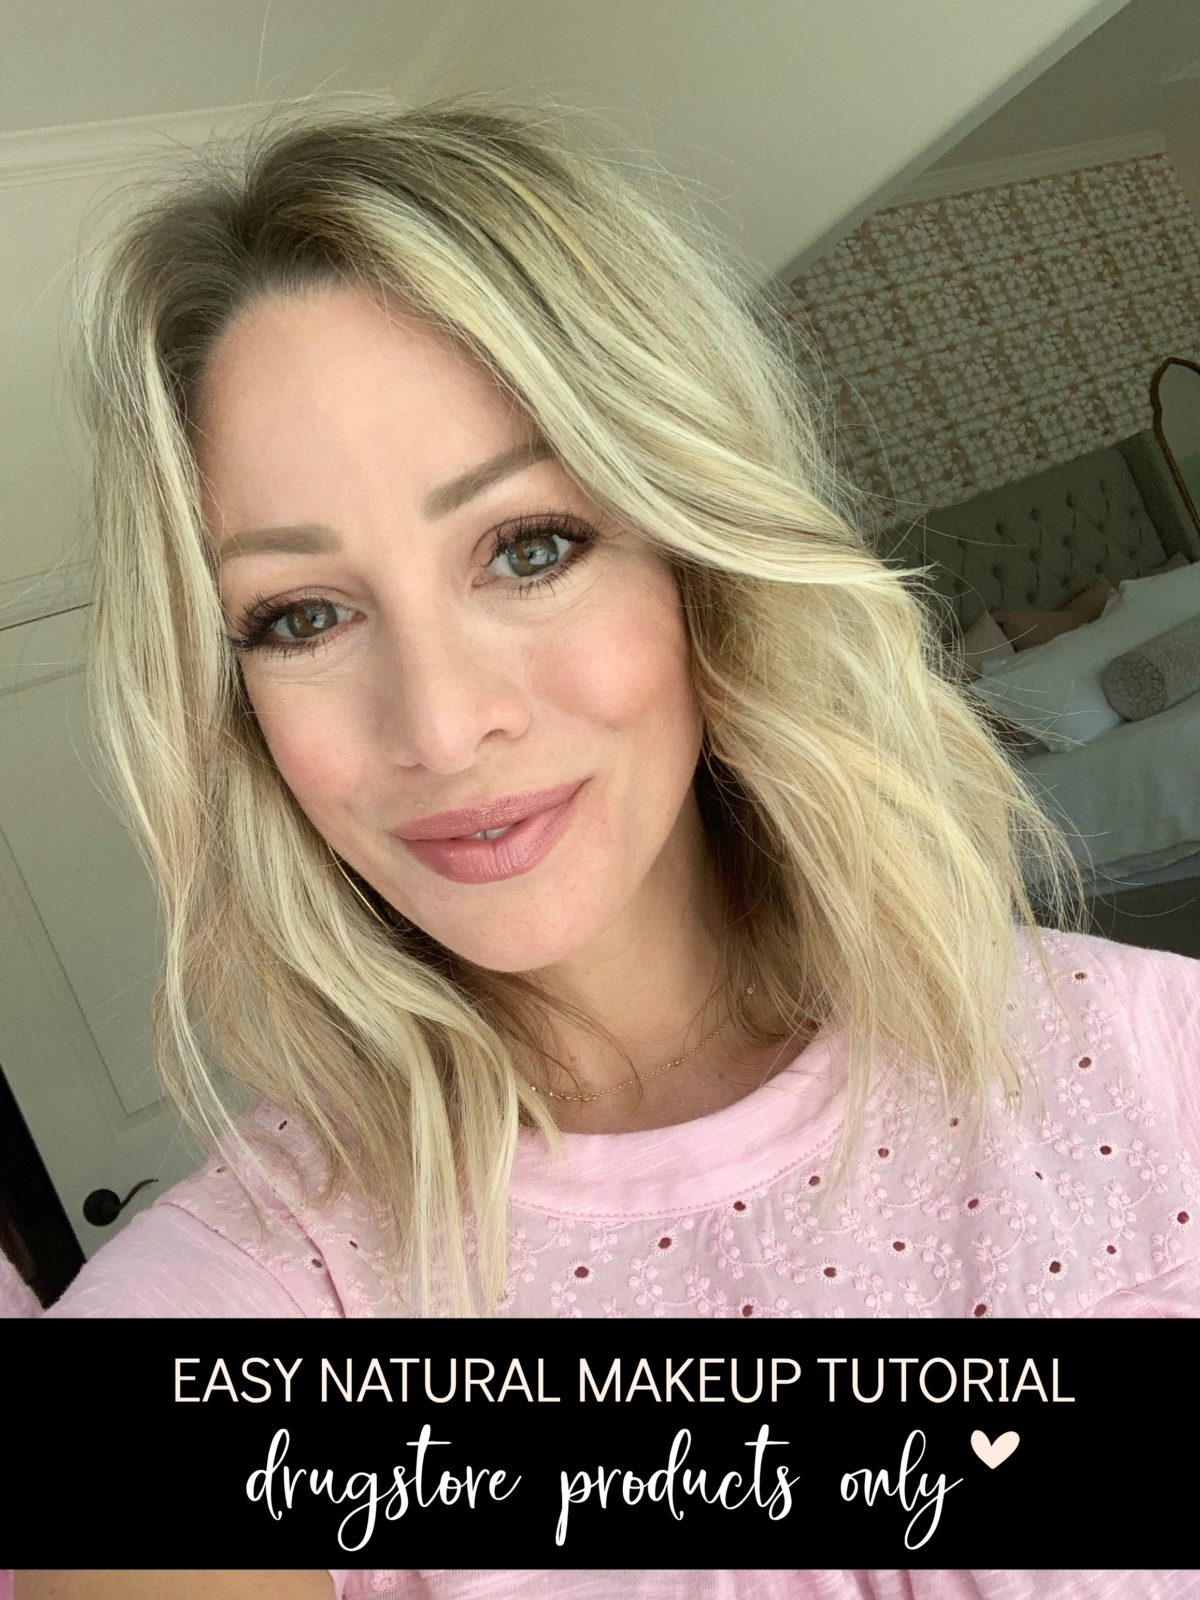 Easy Natural Makeup Tutorial Drugstore Products Only